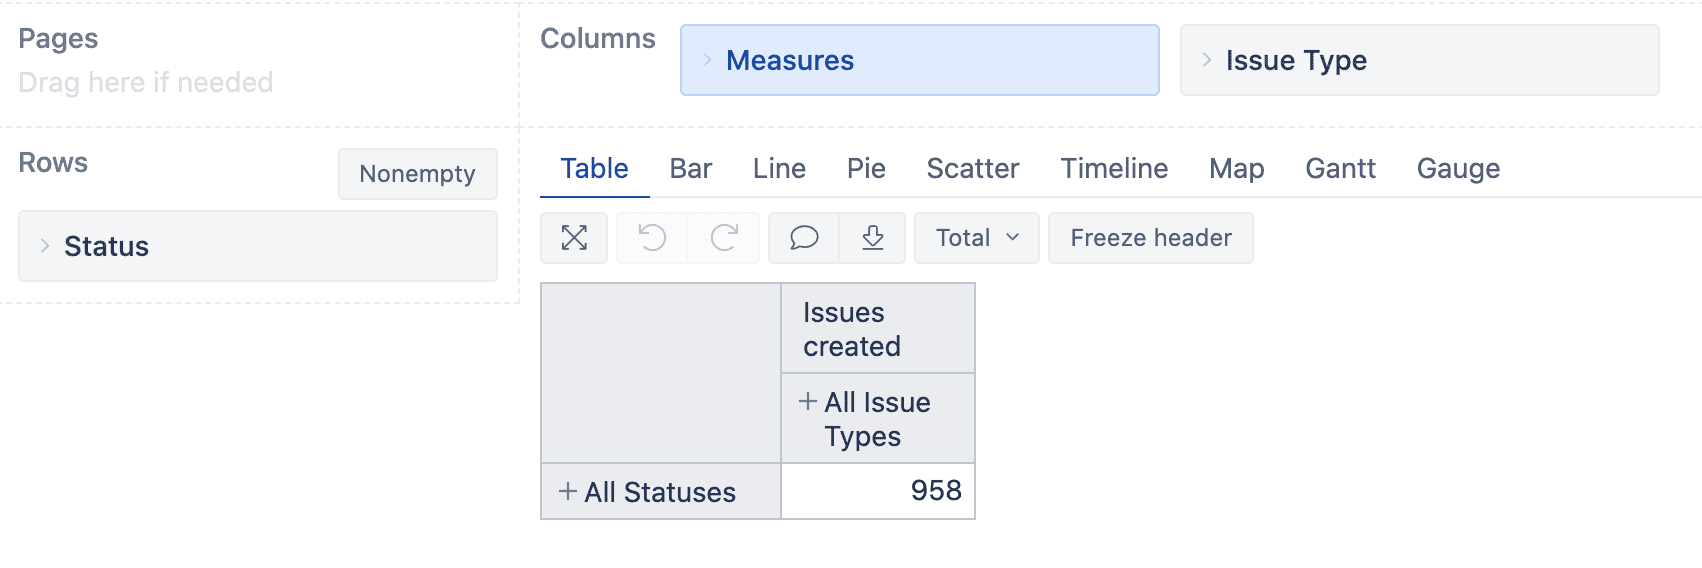 eazybi for jira issue type dimension